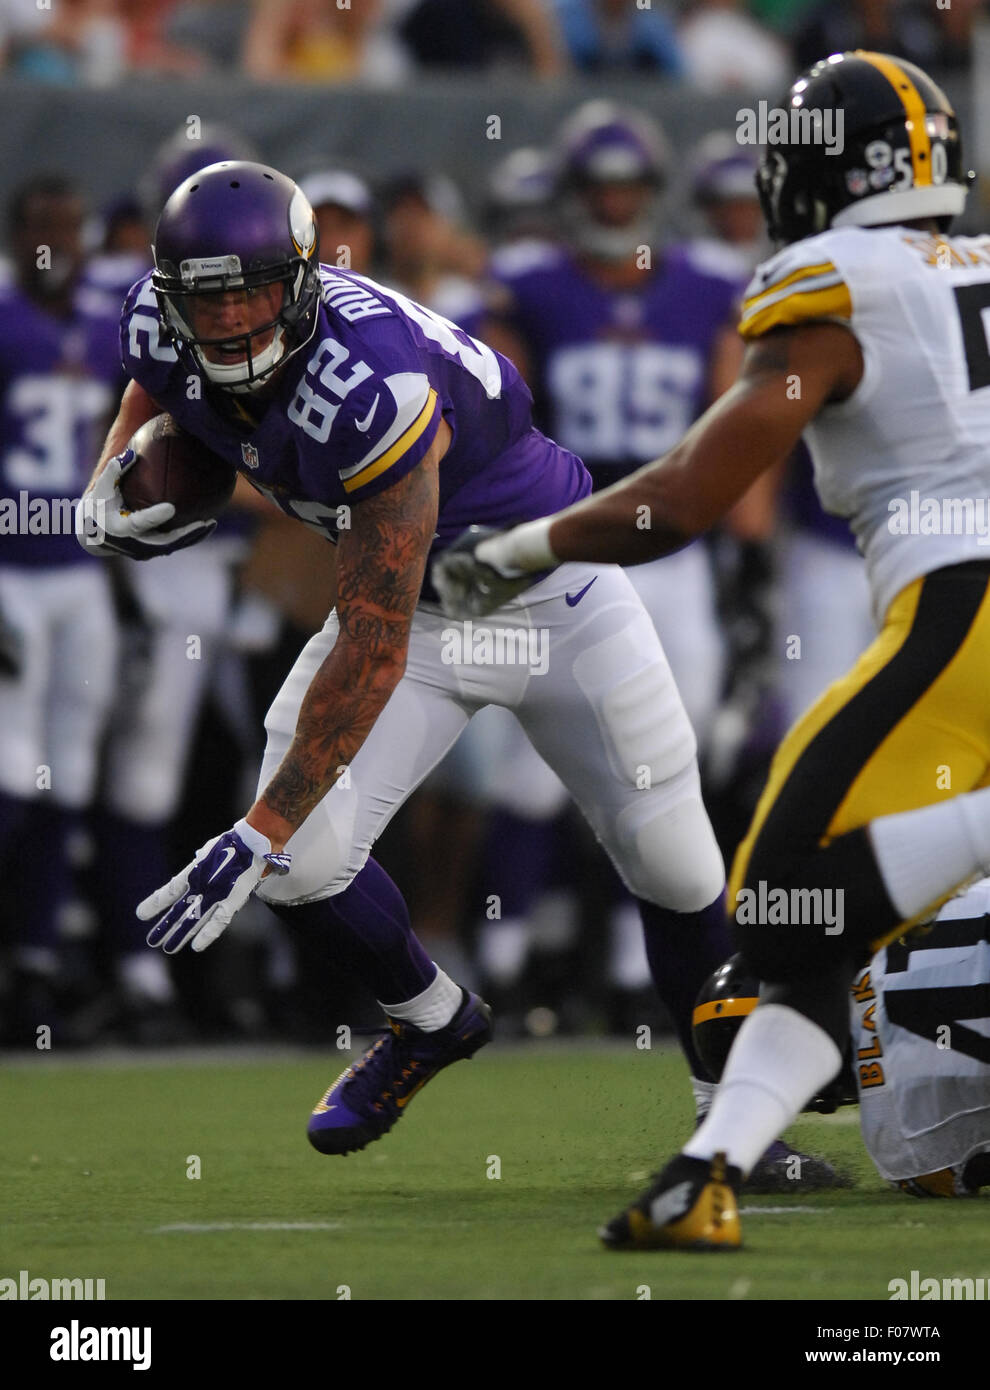 Canton Ohio 9th Aug 2015 Kyle Rudolph 82 During The Nfl